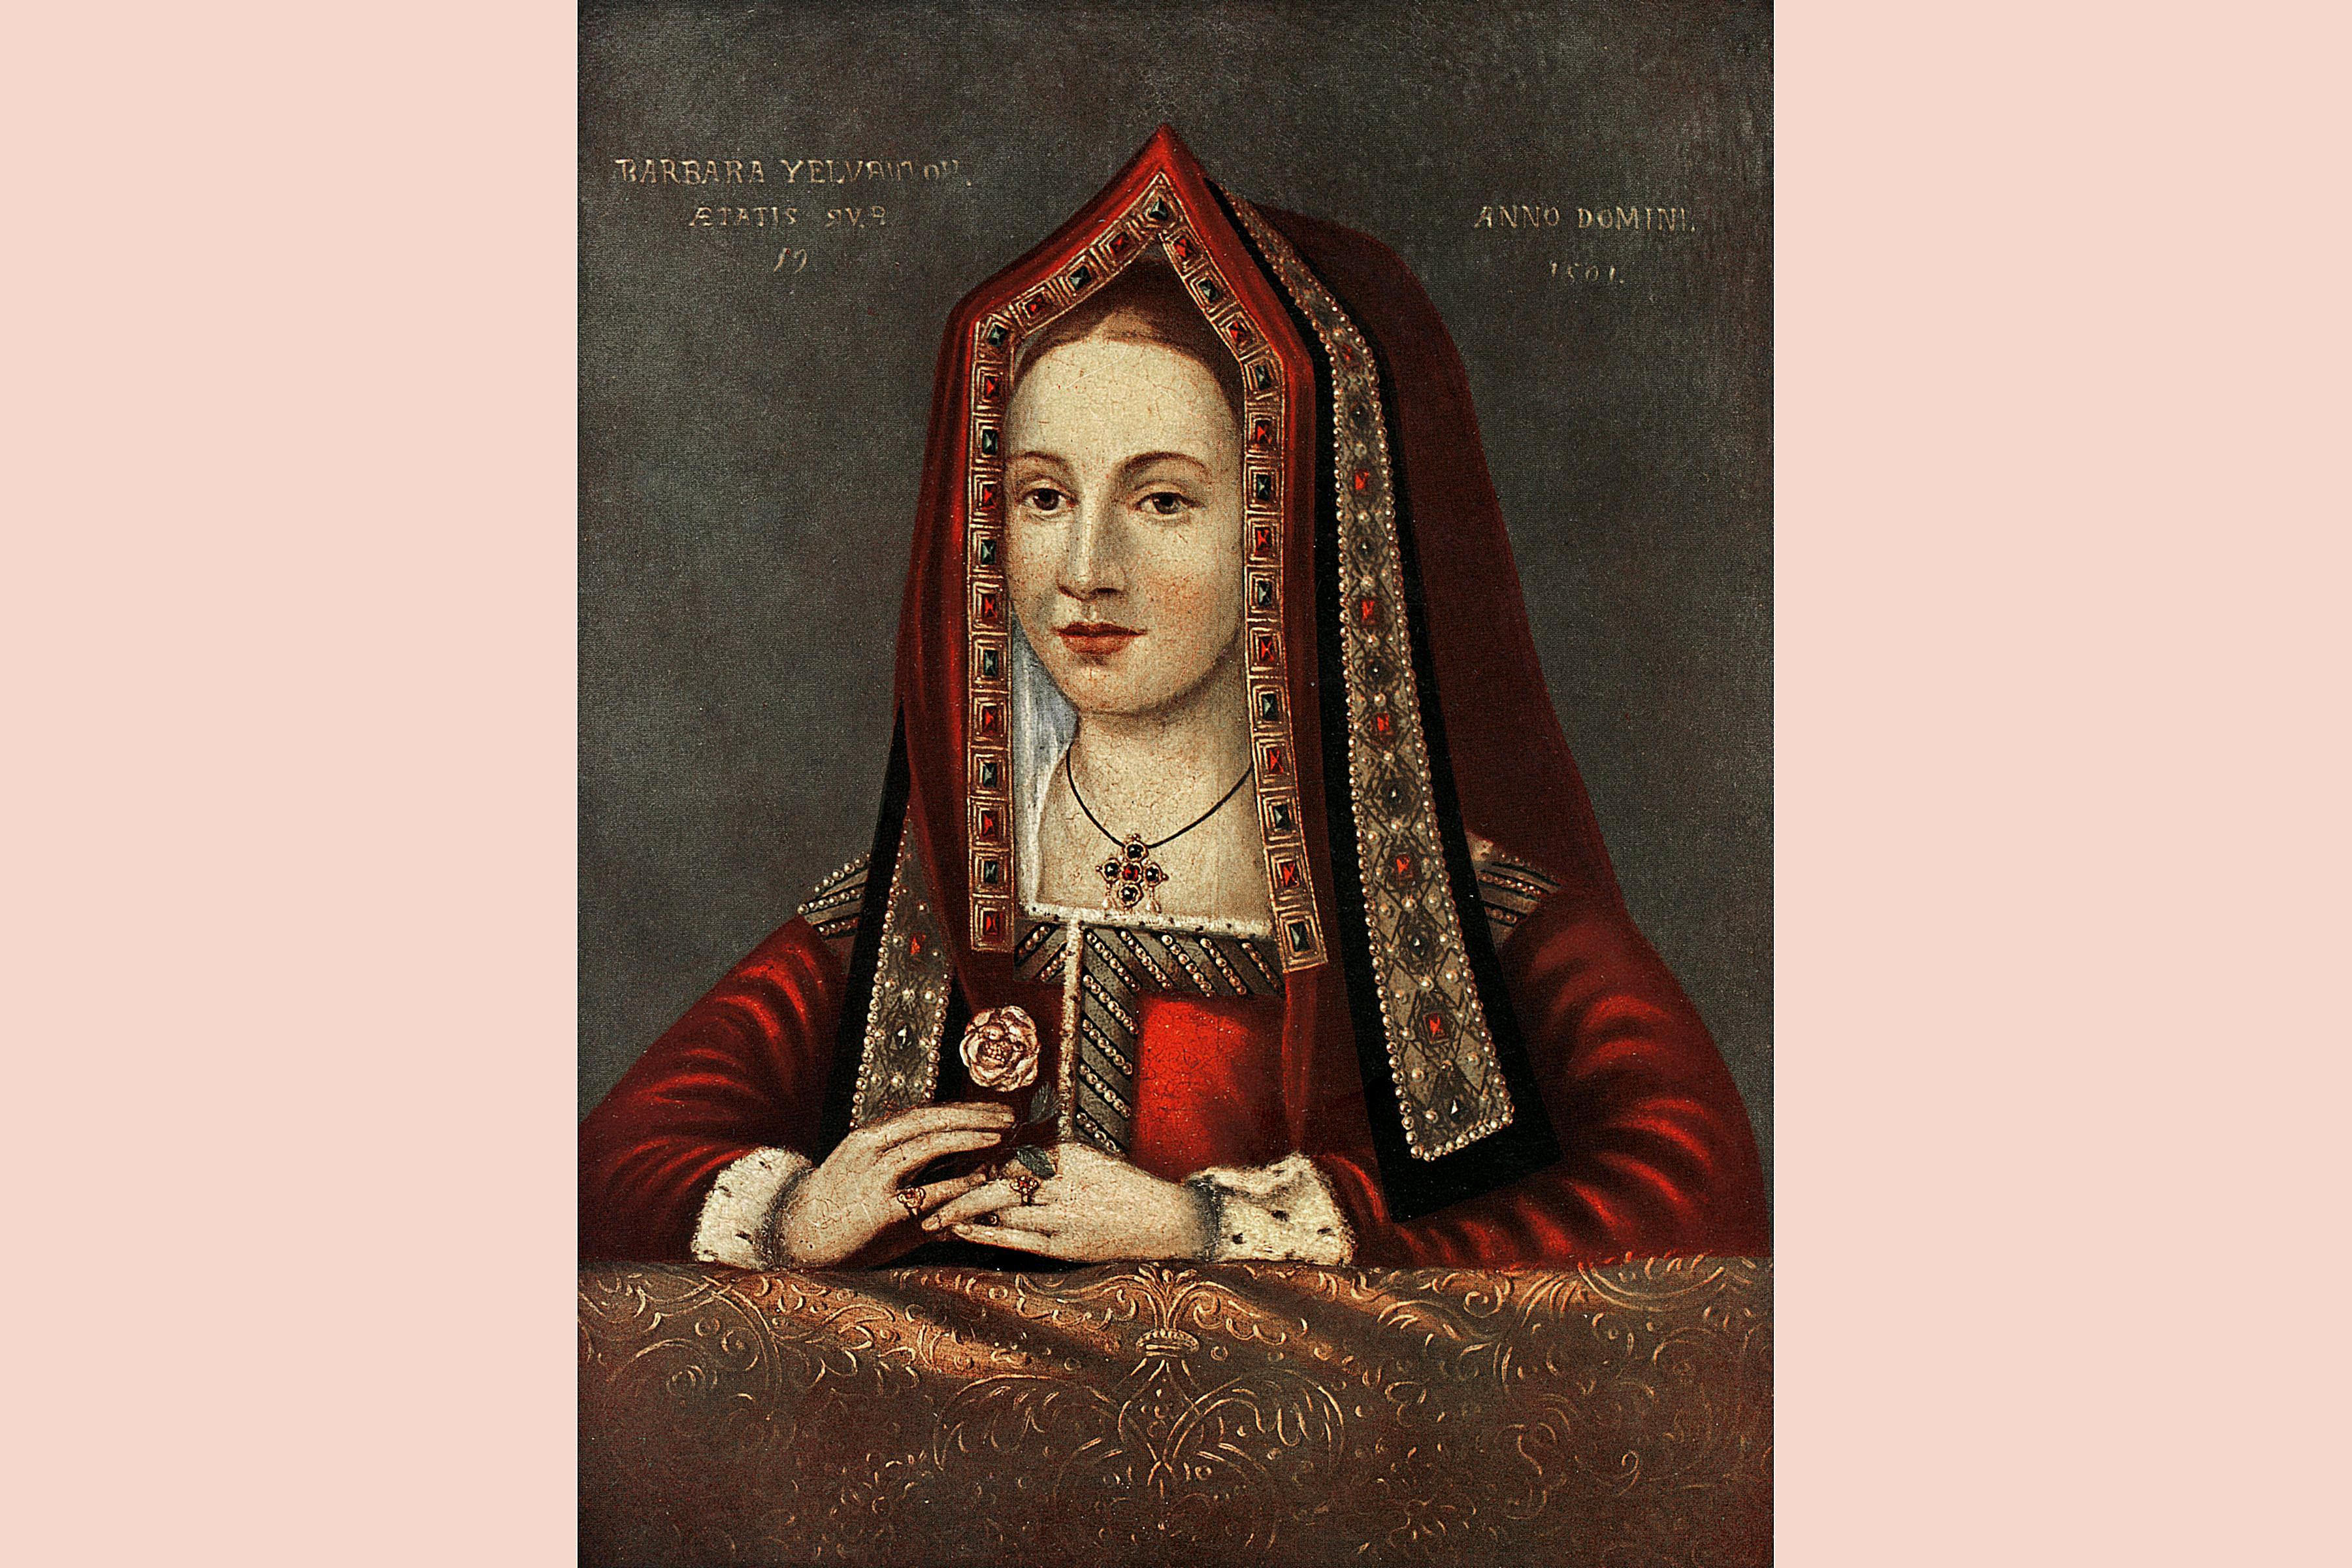 a biography of elizabeth i tudor a queen of england Queen elizabeth, known as the virgin queen because she never married or had children, was the last tudor monarch when she died in 1603, deeply mourned by her people who called her good queen bess or gloriana, a new dynasty came to the throne, the stuarts.